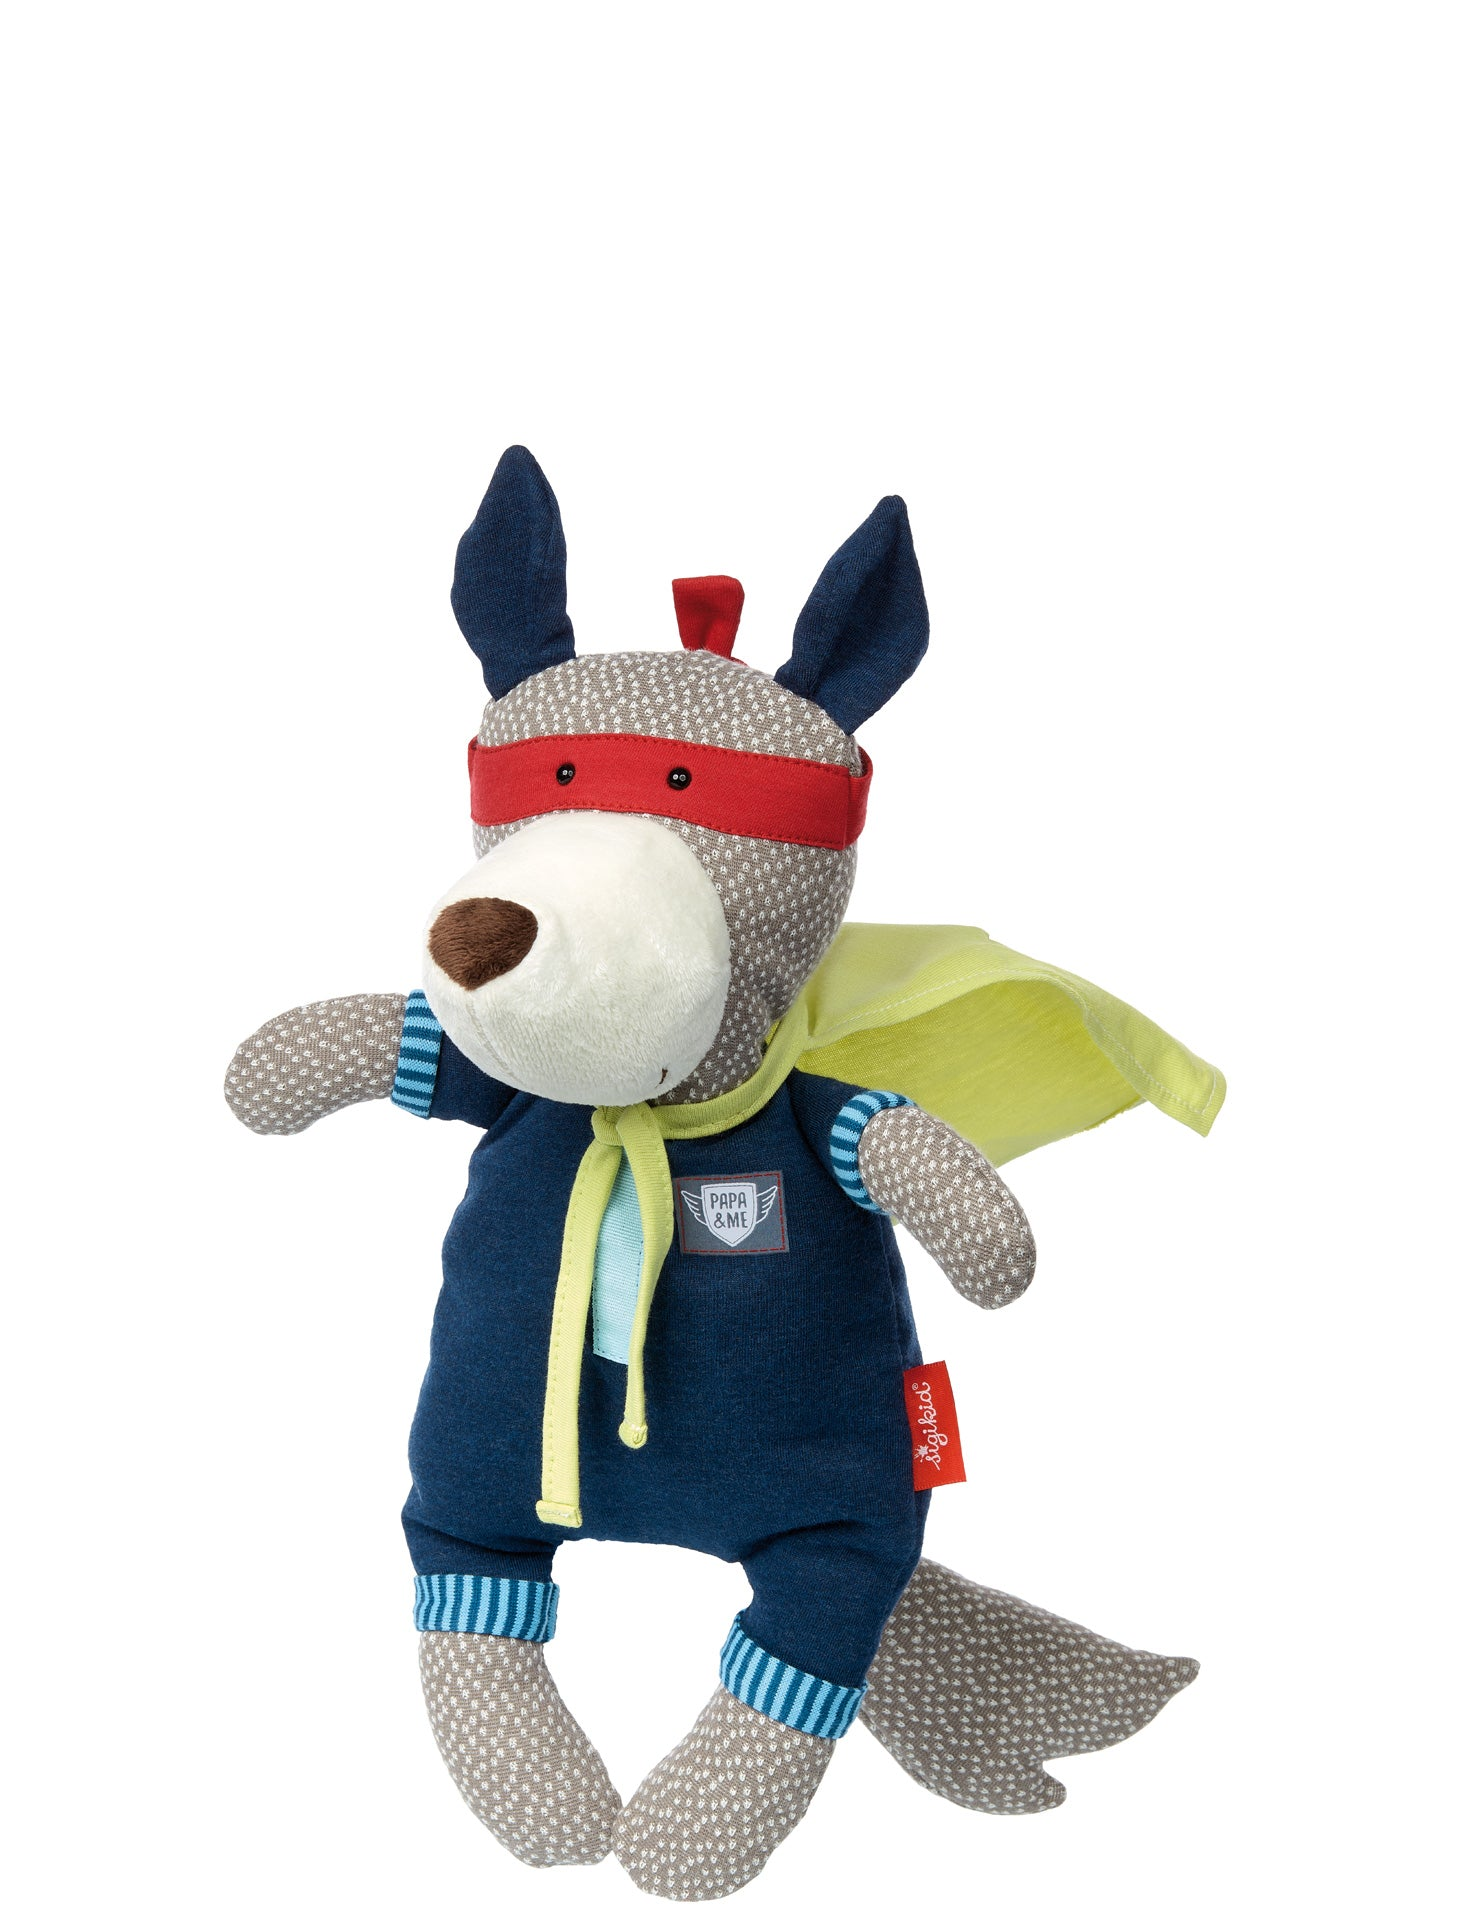 sigikid High Quality and Super Soft Toys From Germany Since 1968